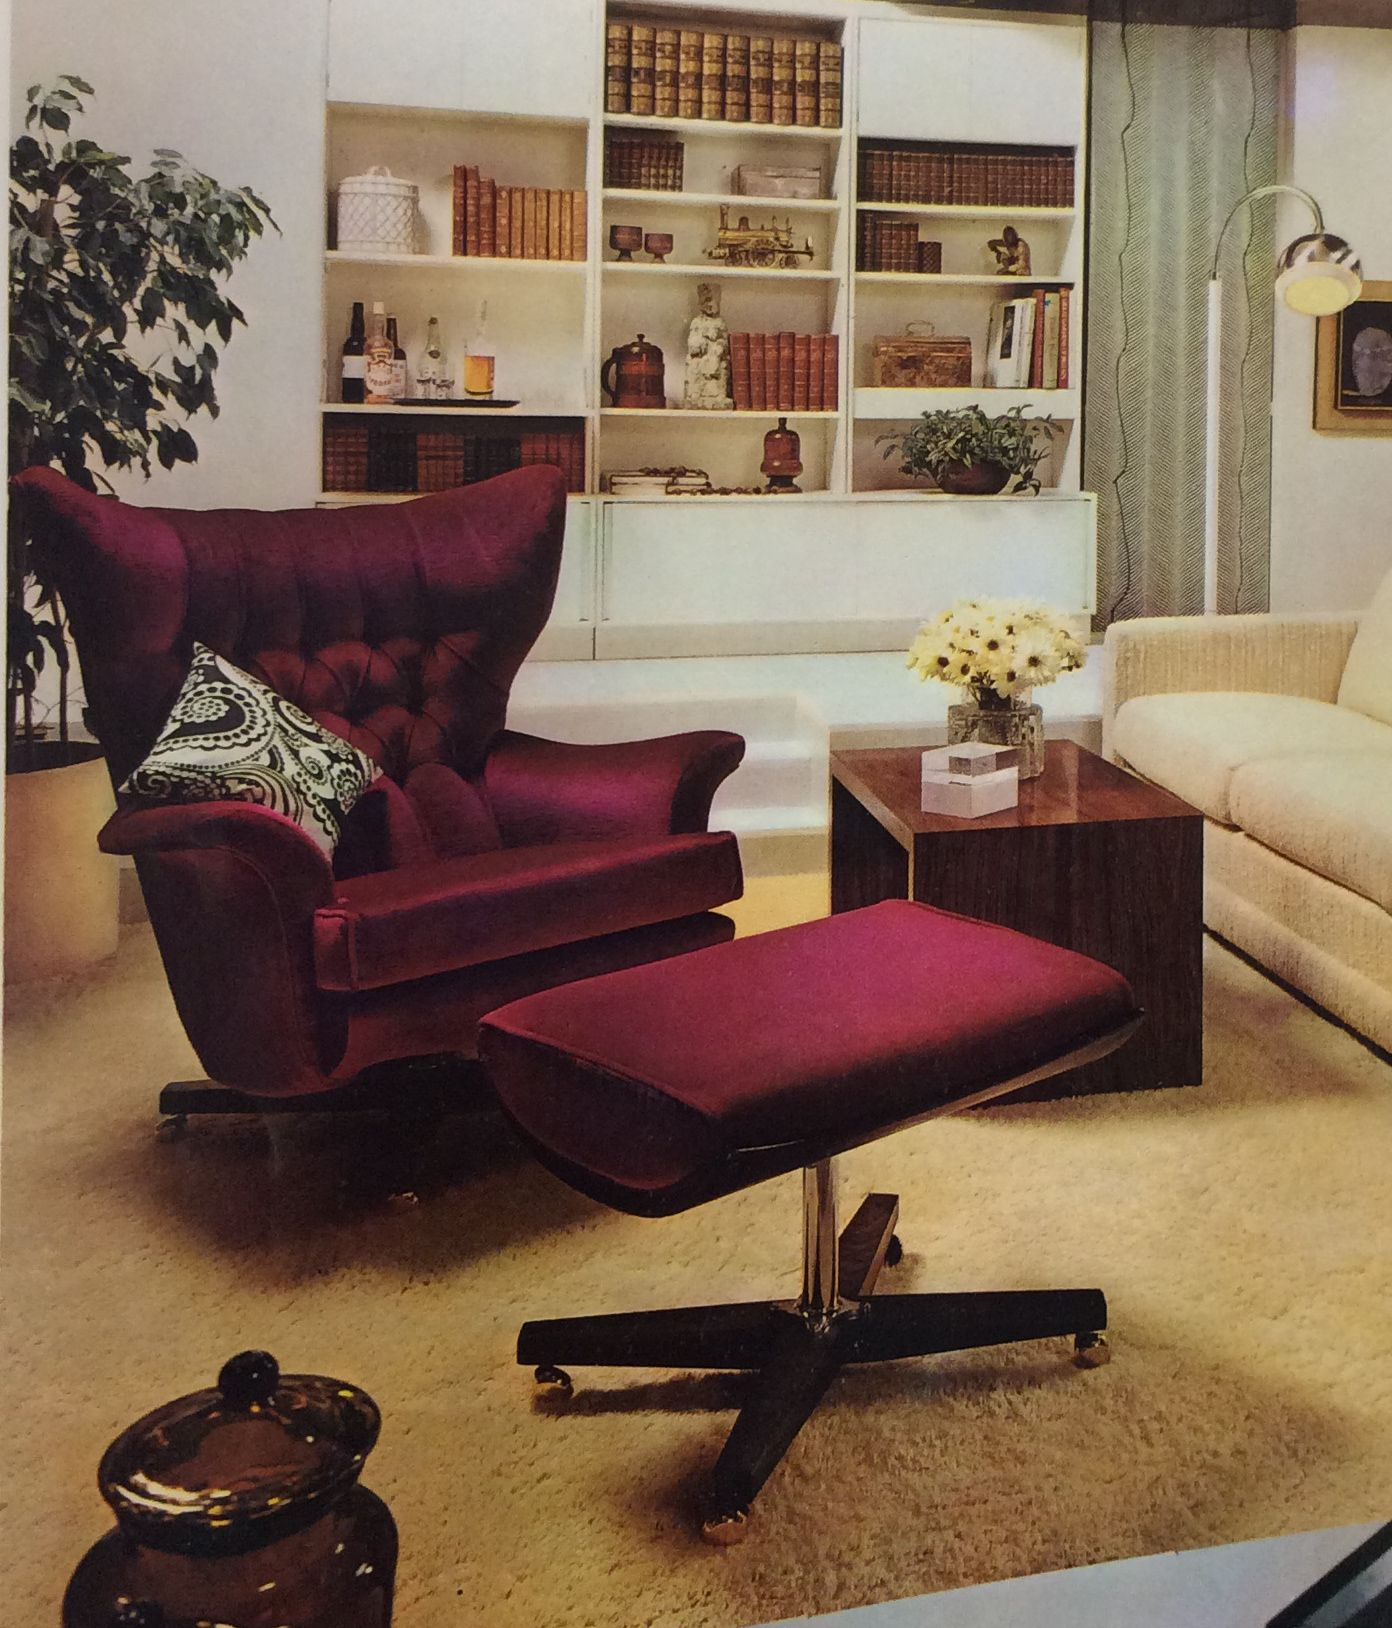 The Most Comfortable Chair In The World' G Plan 6250 6250 Model